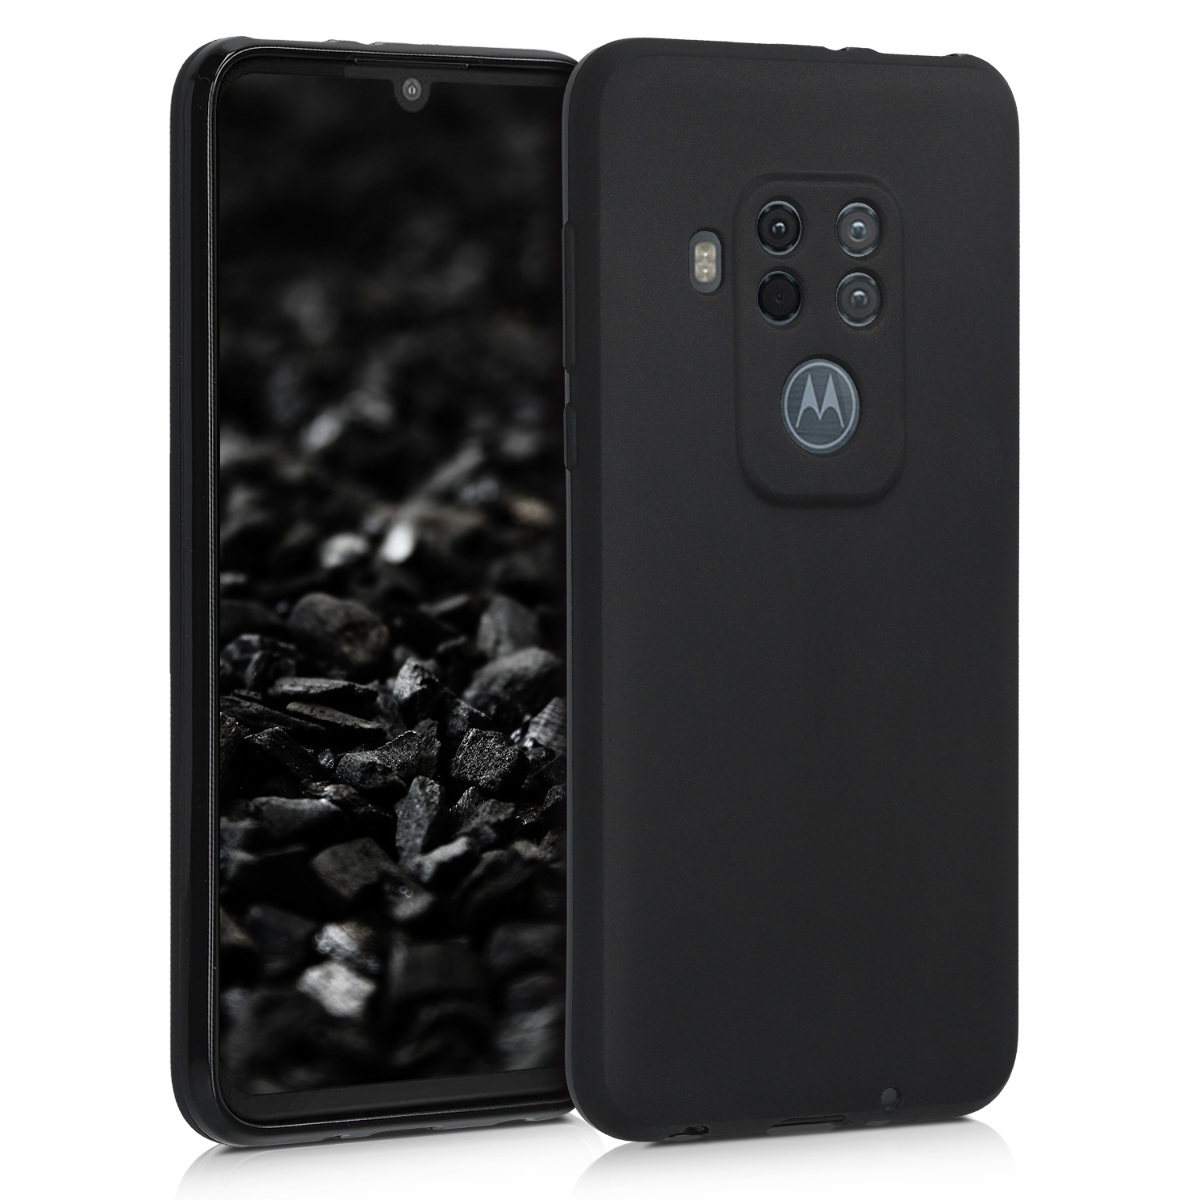 KW Θήκη Σιλικόνης Motorola One Zoom - Black Matte (49912.47)